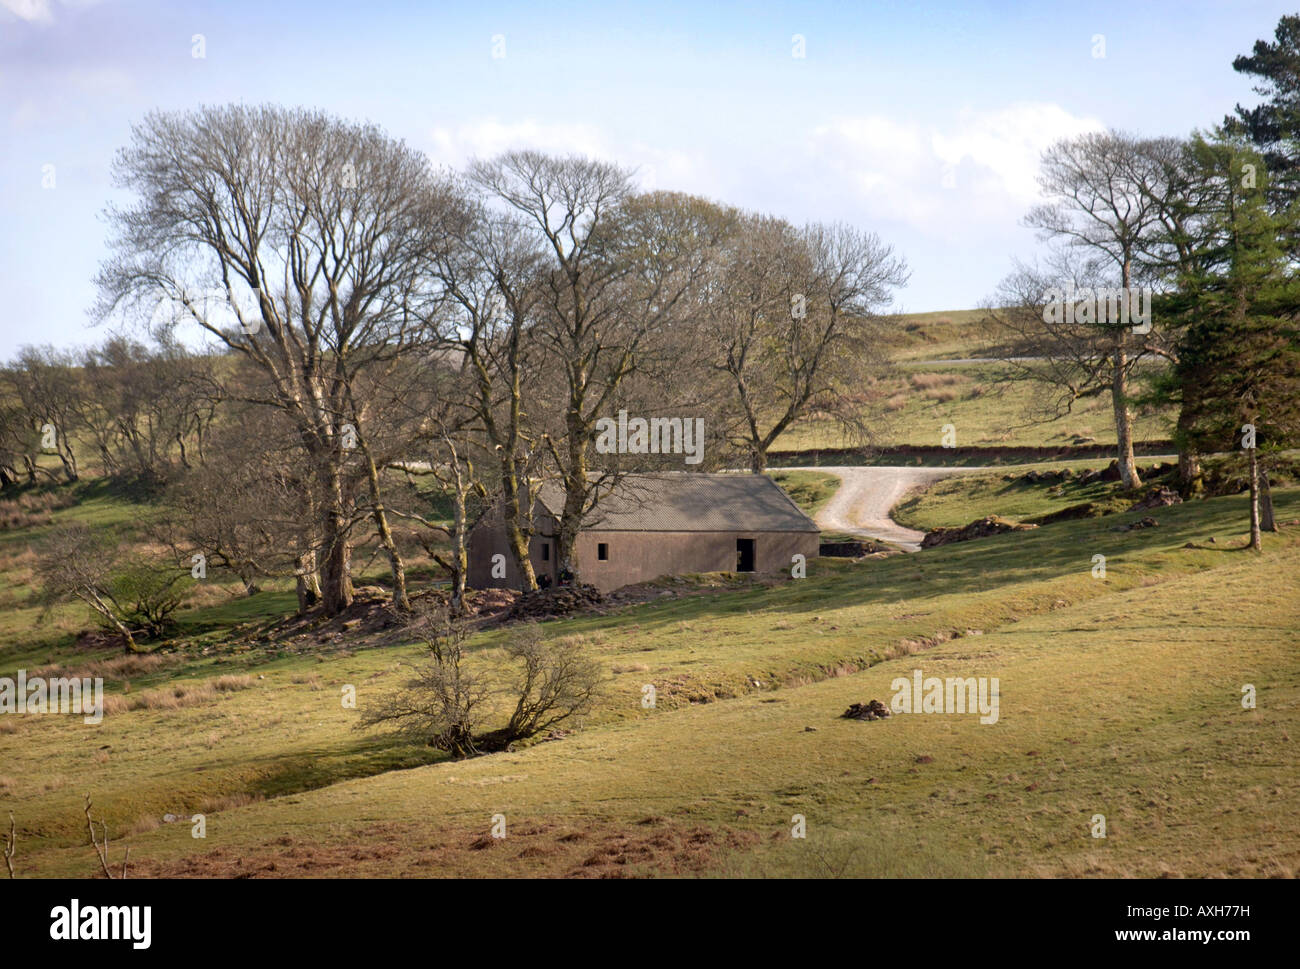 A BRITISH ARMY BUILDING IN BRECON WALES USED FOR MILITARY TRAINING INCLUDING SNIPERS TARGETING - Stock Image